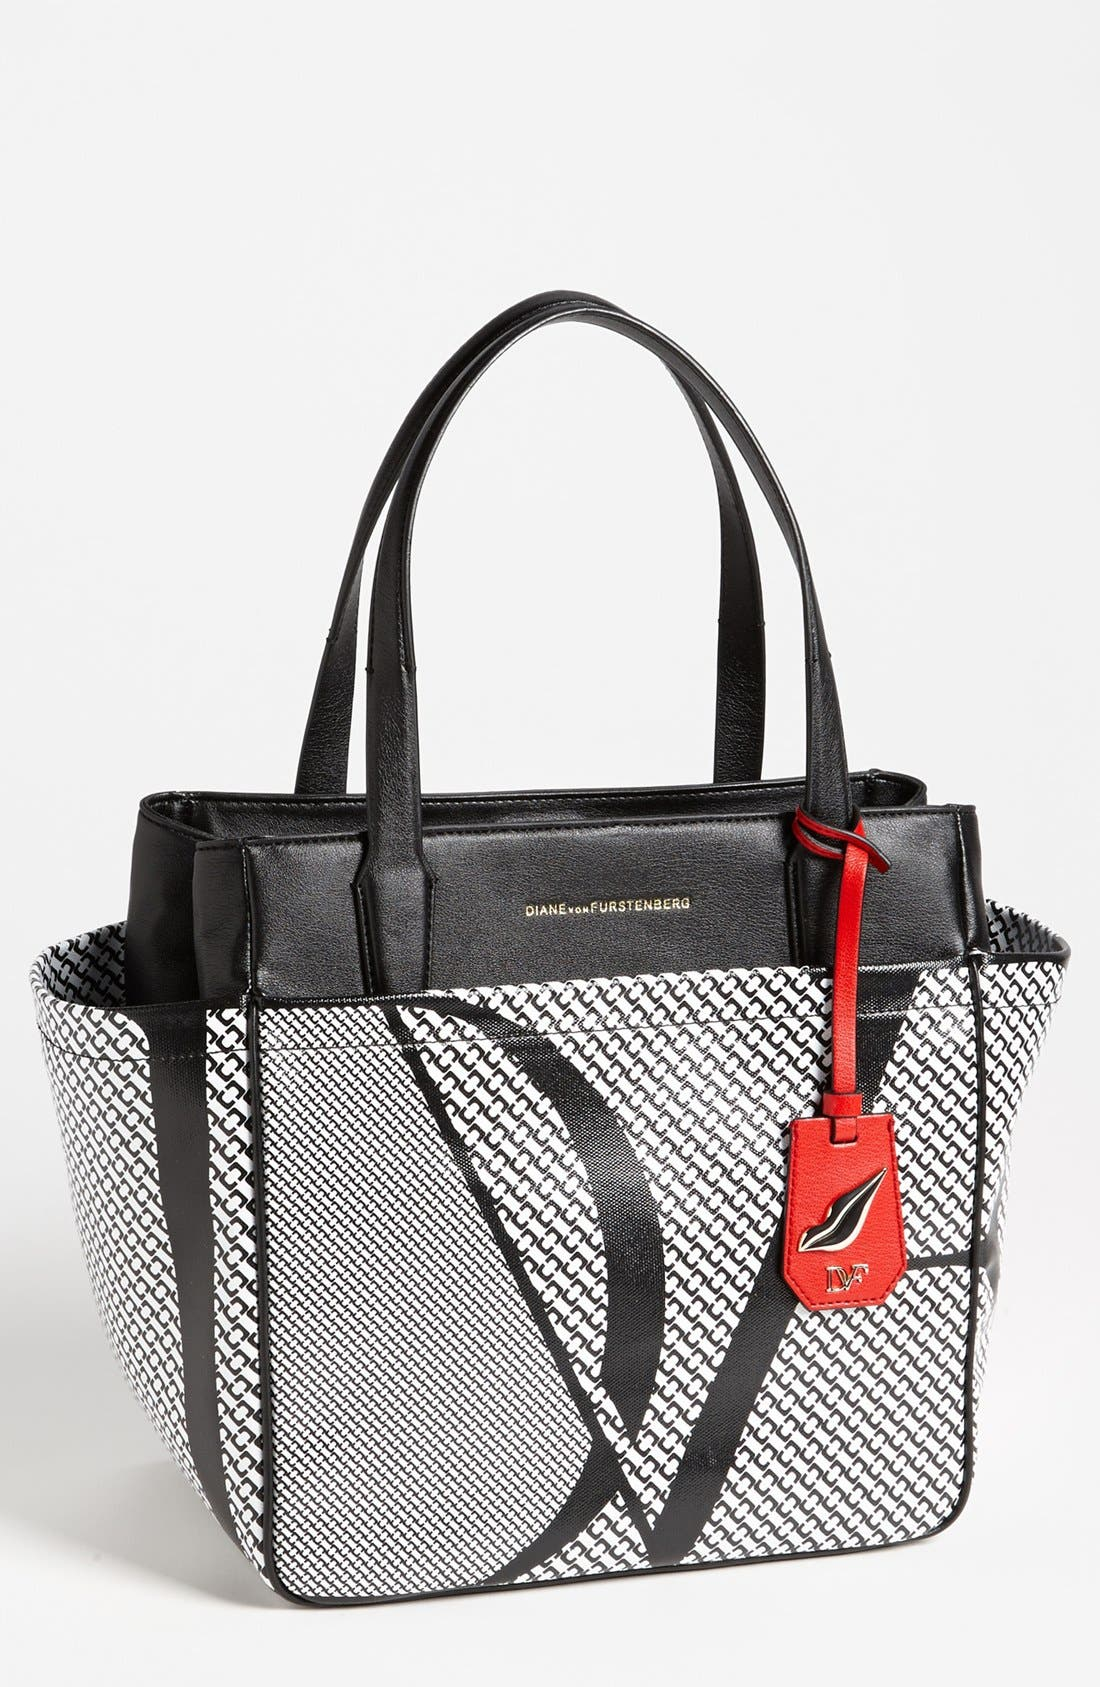 Main Image - Diane von Furstenberg 'On the Go' Shoulder Bag